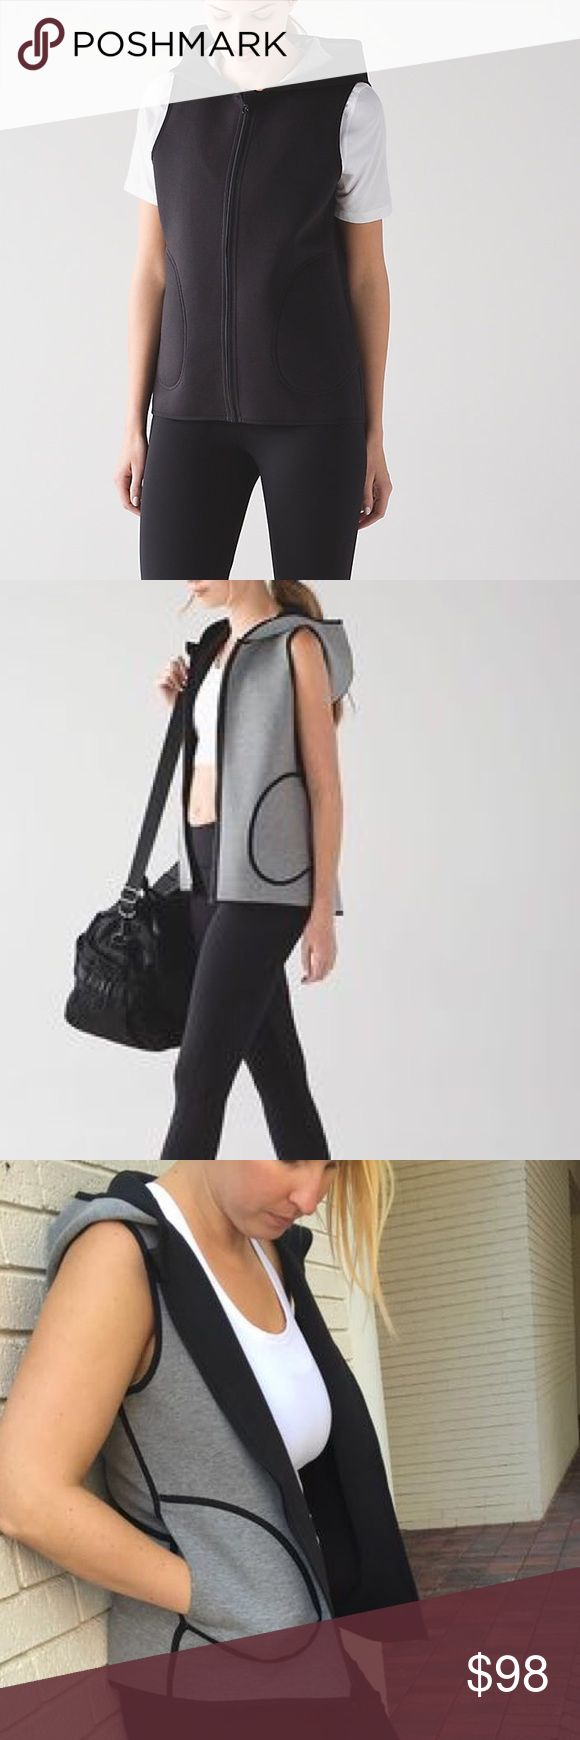 Lululemon Insculpt Vest Reversible Excellent condition. Worn once & washed once on gentle. Hung to dry. Black & grey reversible. Not sold by Lulu anymore. A rare find! Interested in trading for other Lulu items size 2 or 4!! lululemon athletica Jackets & Coats